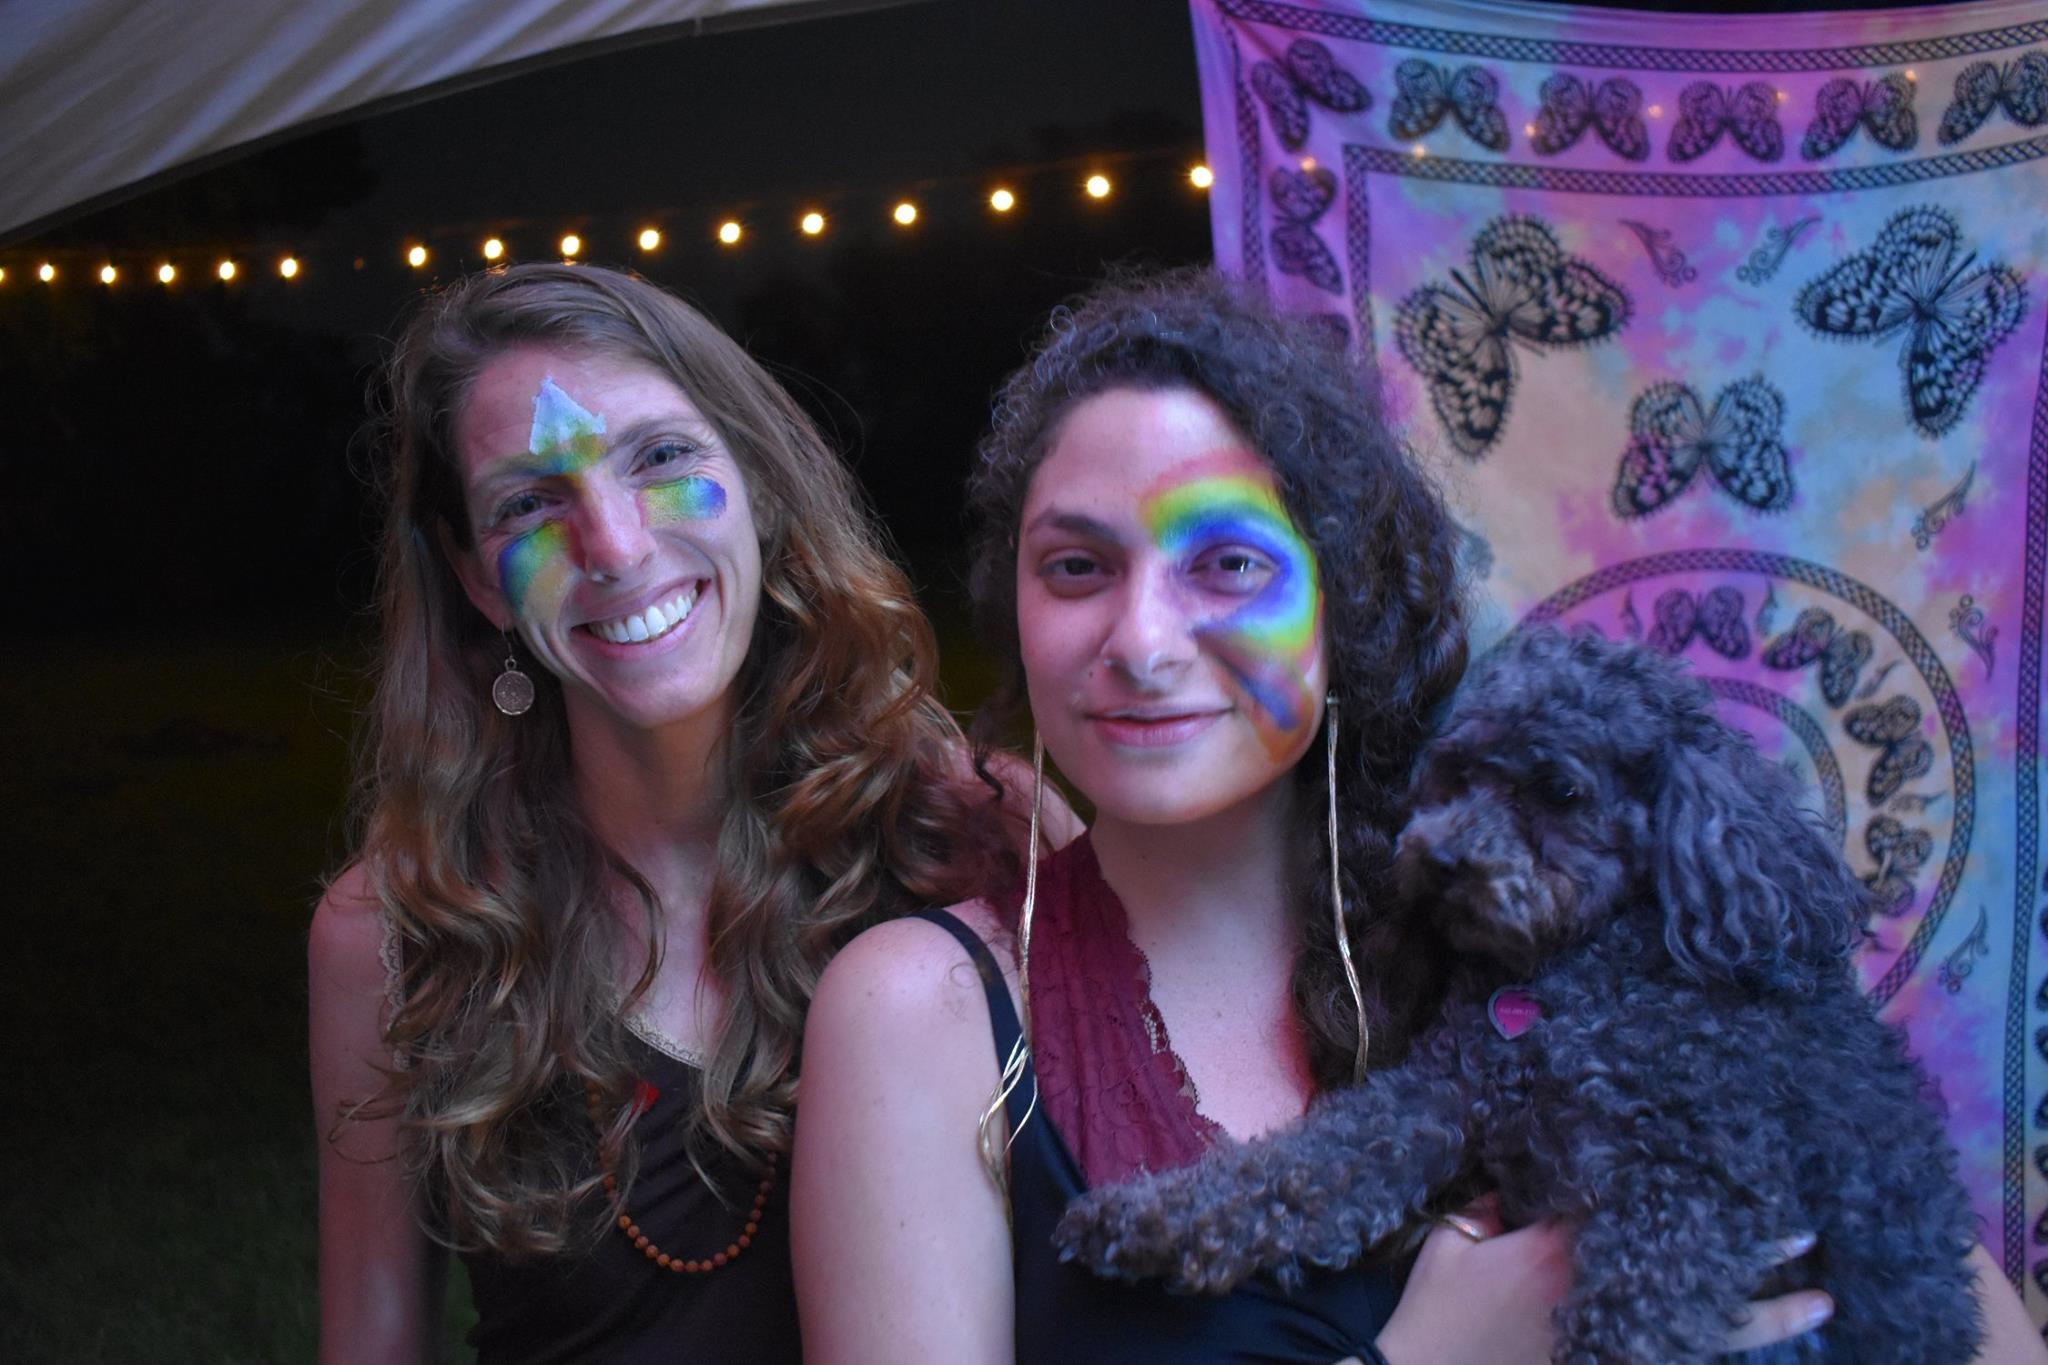 Meredith Nile, myself and my pup Misty aka as Miss Tea at the LOVEATX campout.